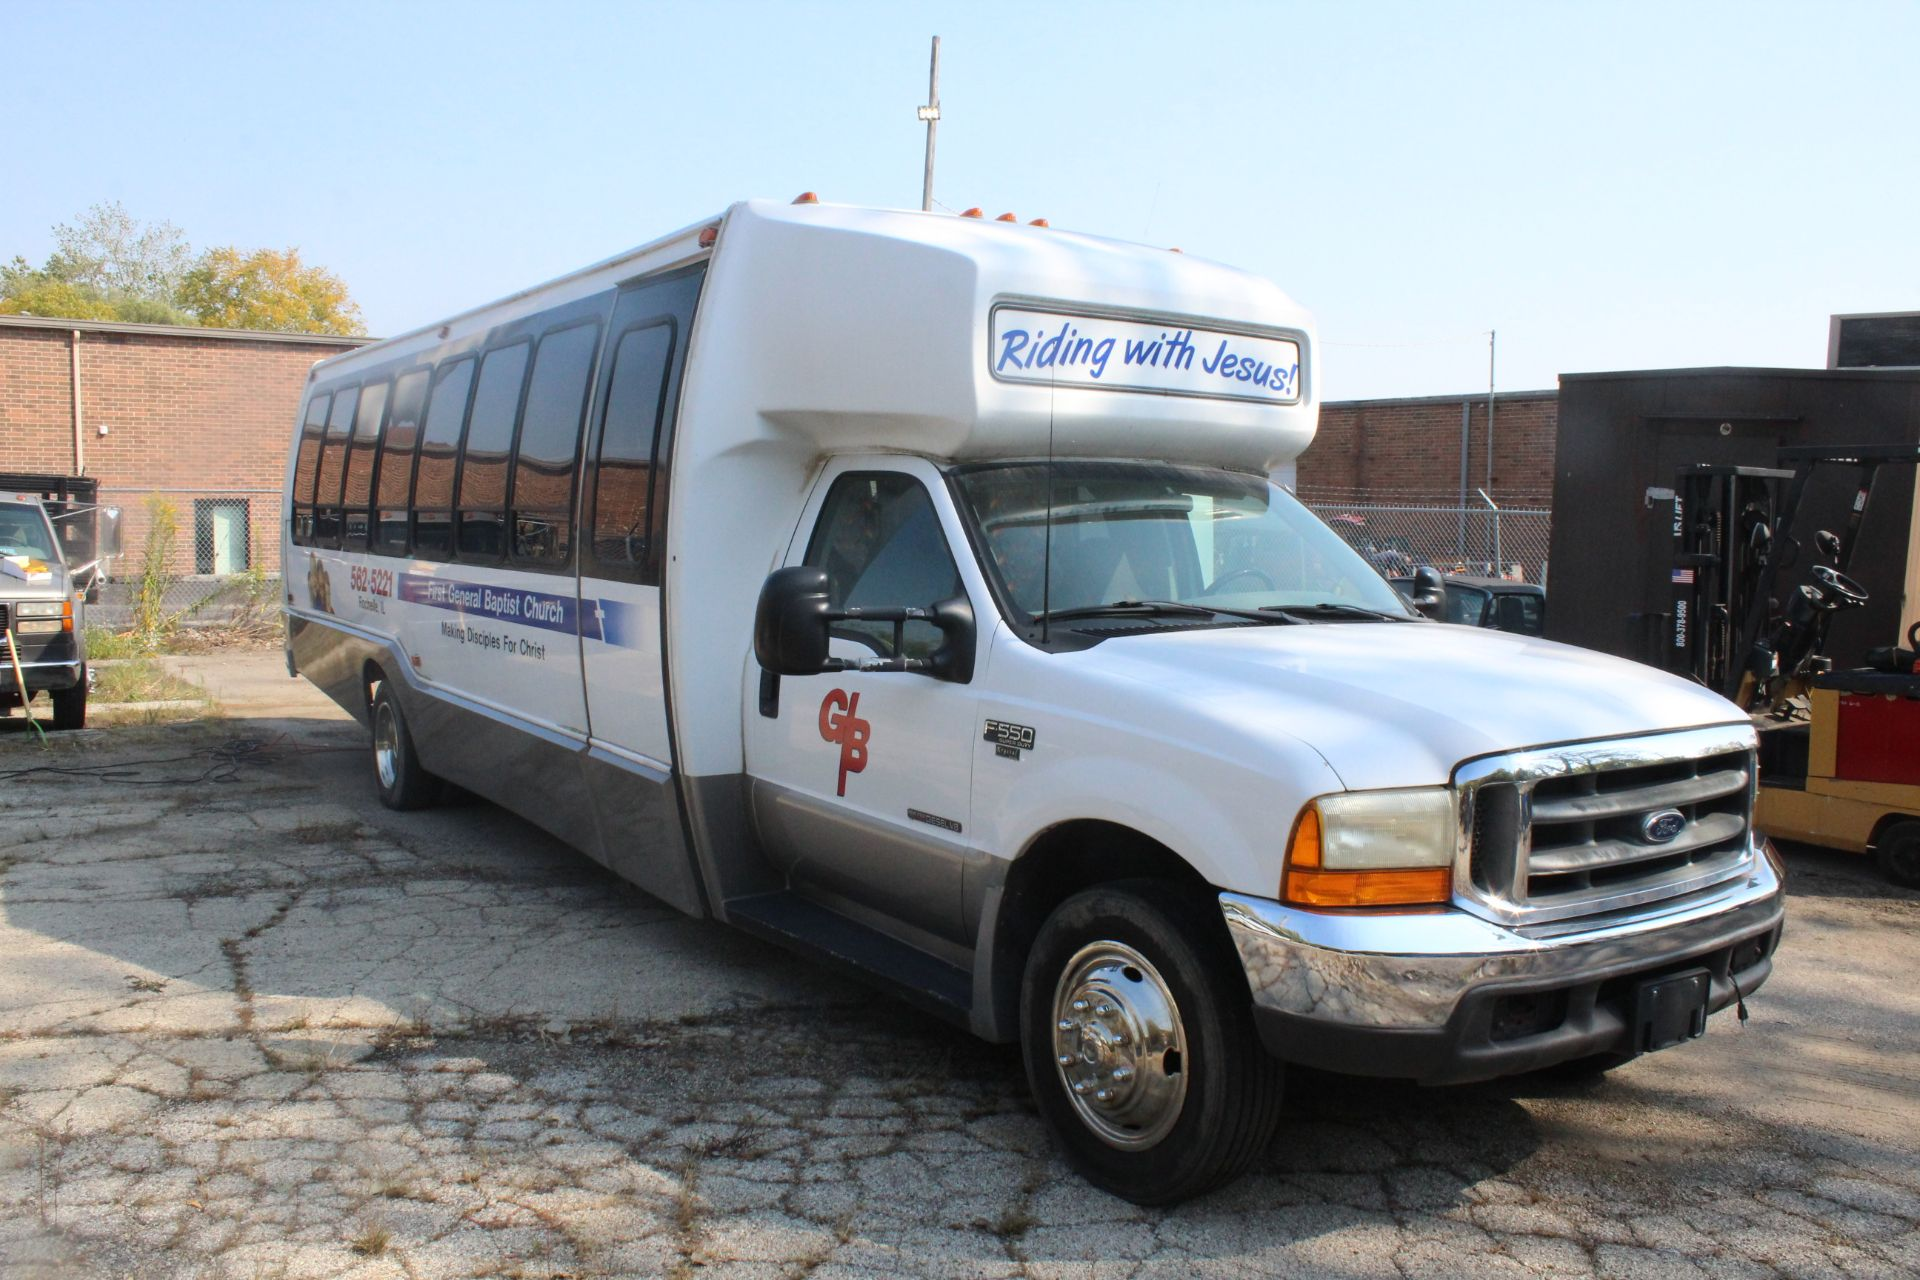 Lot 9 - 1999 FORD F-550 PASSENGER BUS, DIESEL, 7.3L V-8, VIN 1FDAF56F0XED99139, 182,235 MILES SHOWN ON